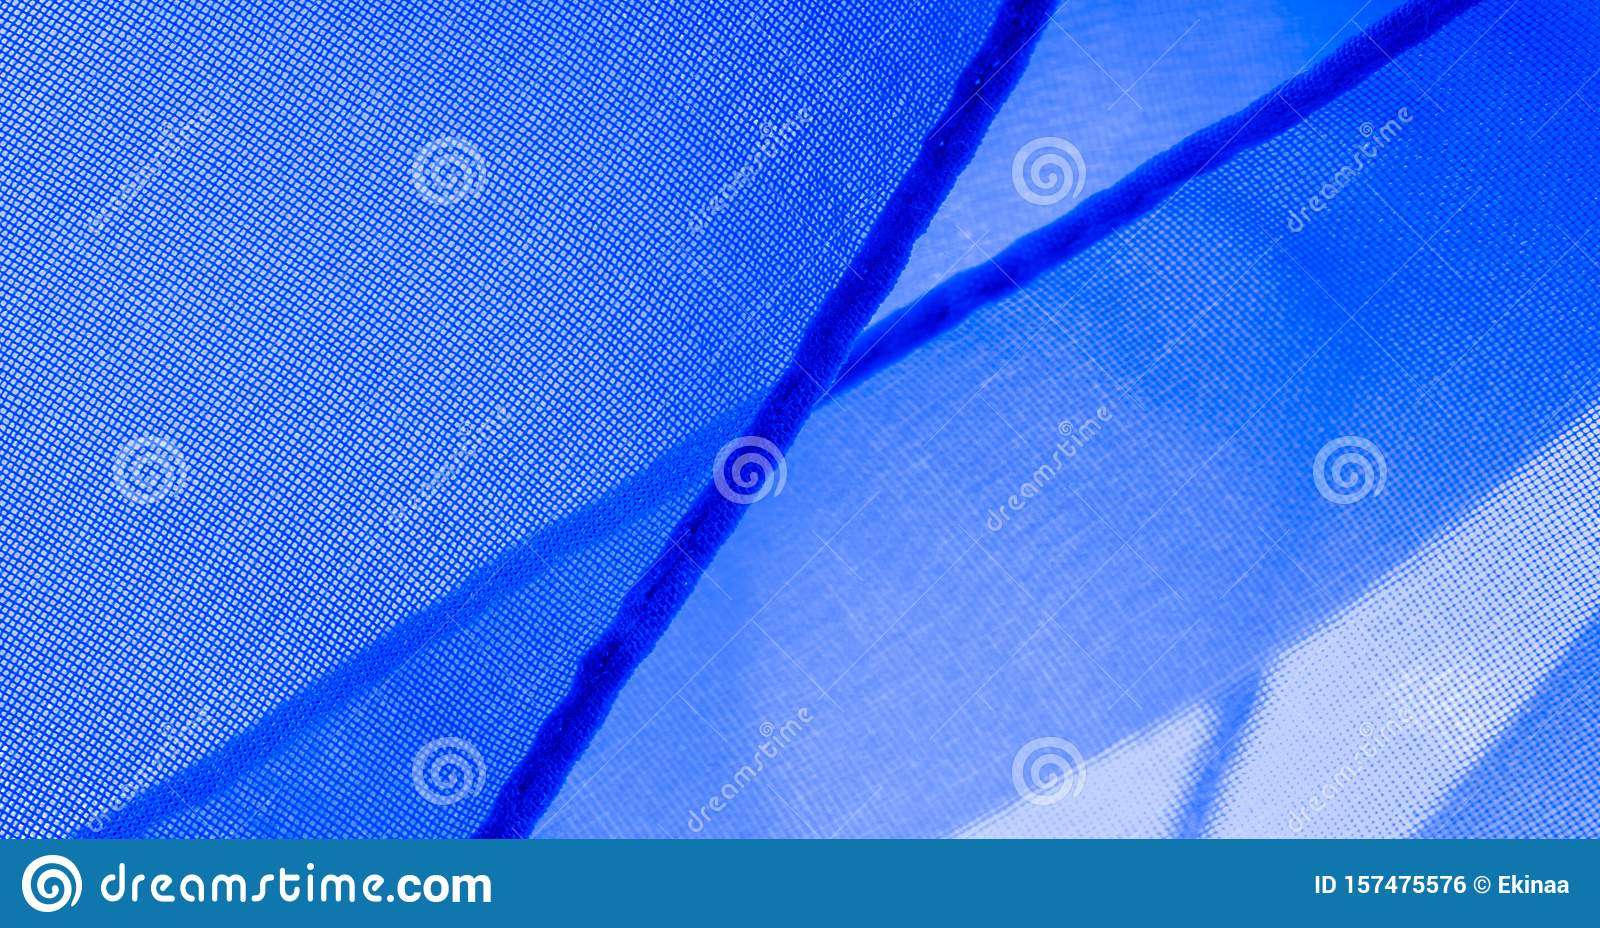 Texture, background, pattern, cyan blue, silk fabric This very lightweight artificial silk fabric has a pleasant sheen. Perfect